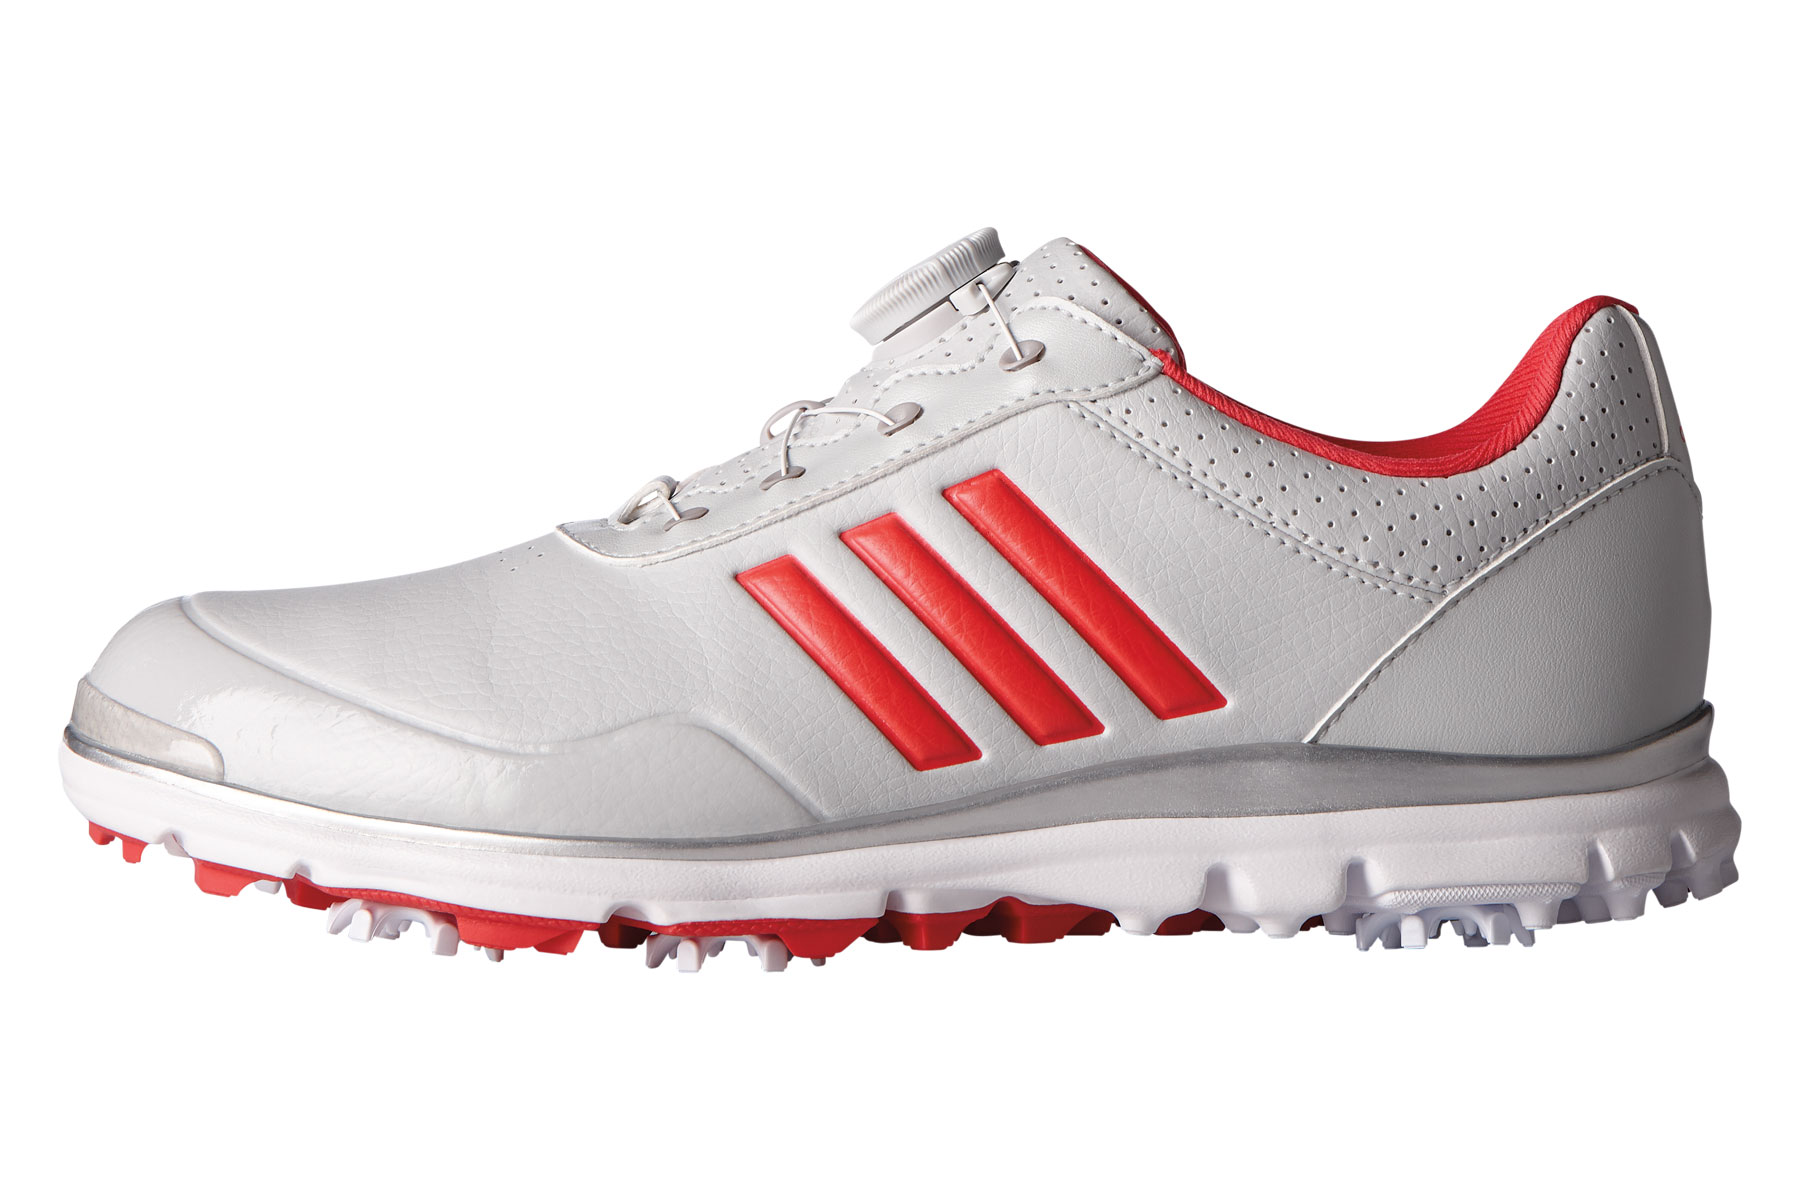 Adidas Golf Adistar Lite Boa Ladies Shoes Uk